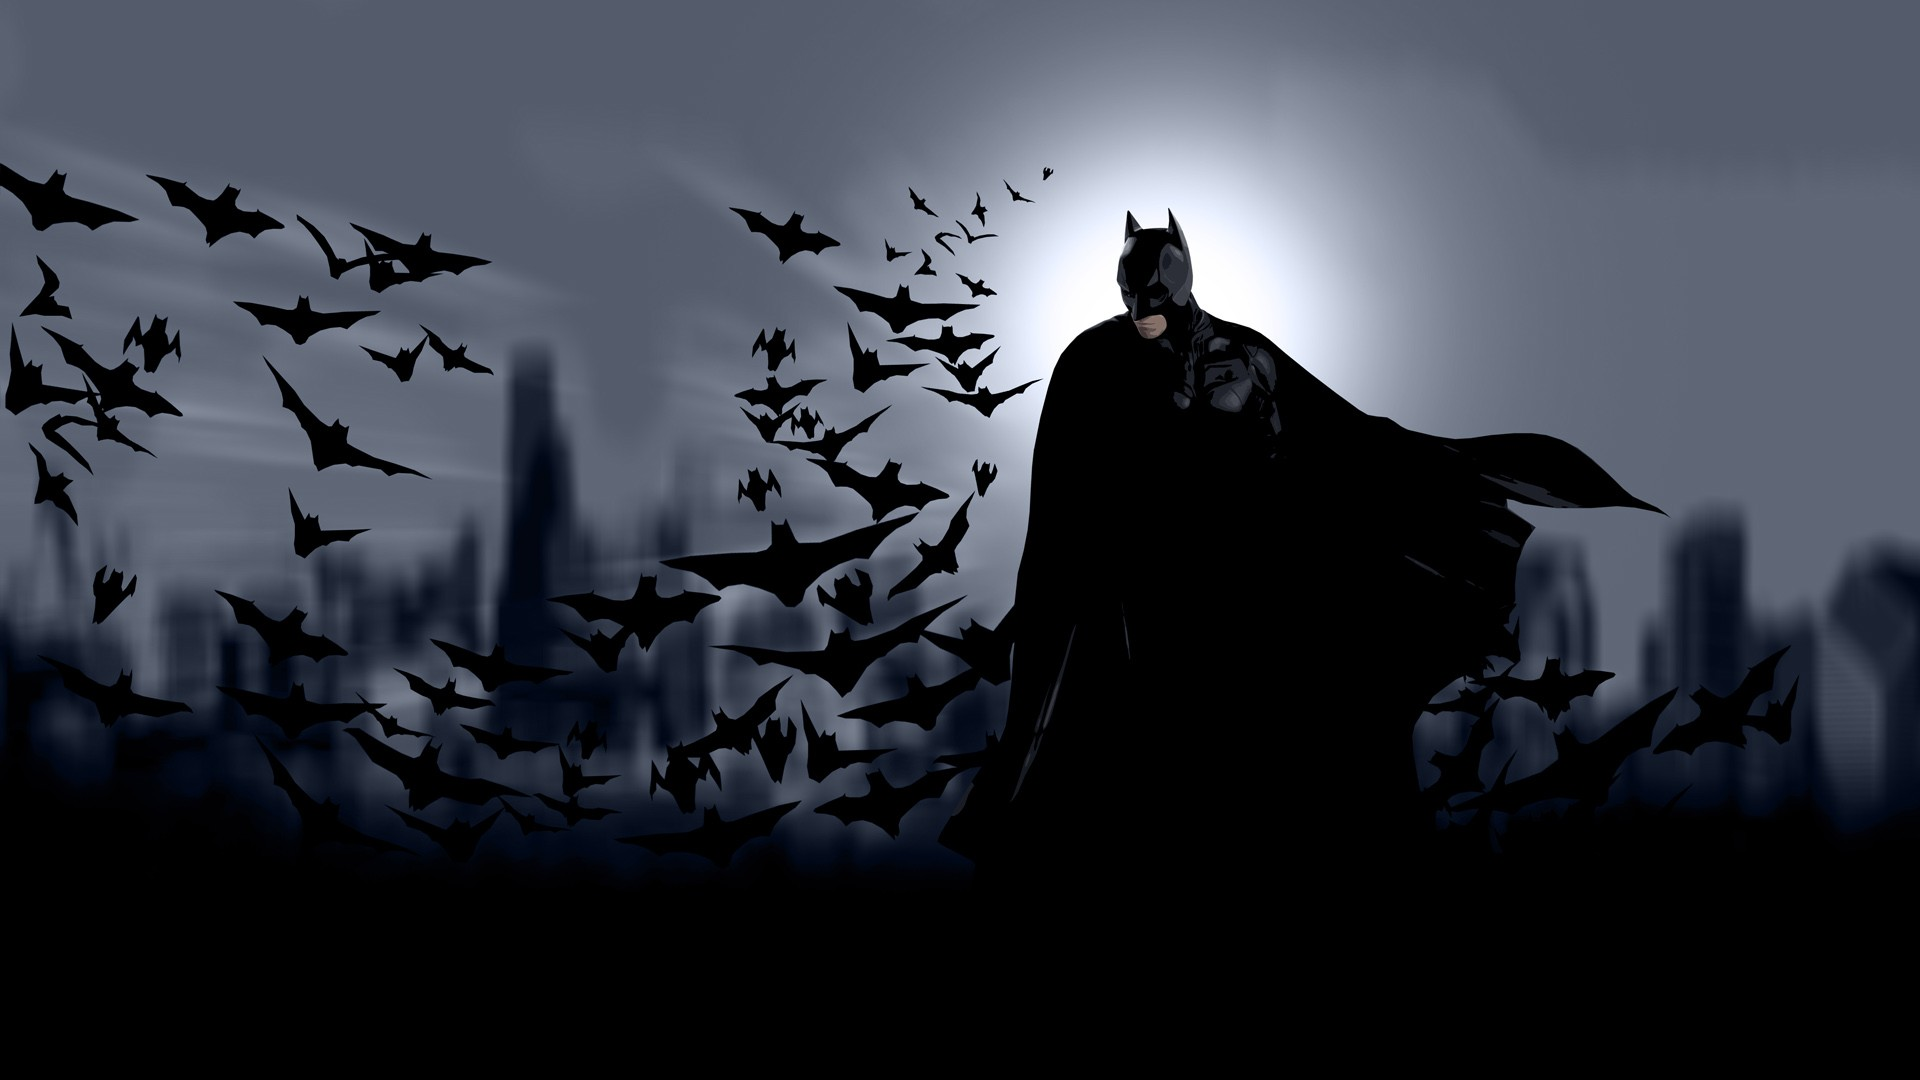 Batman-Comic-Strip-wallpaper-wpc9002621